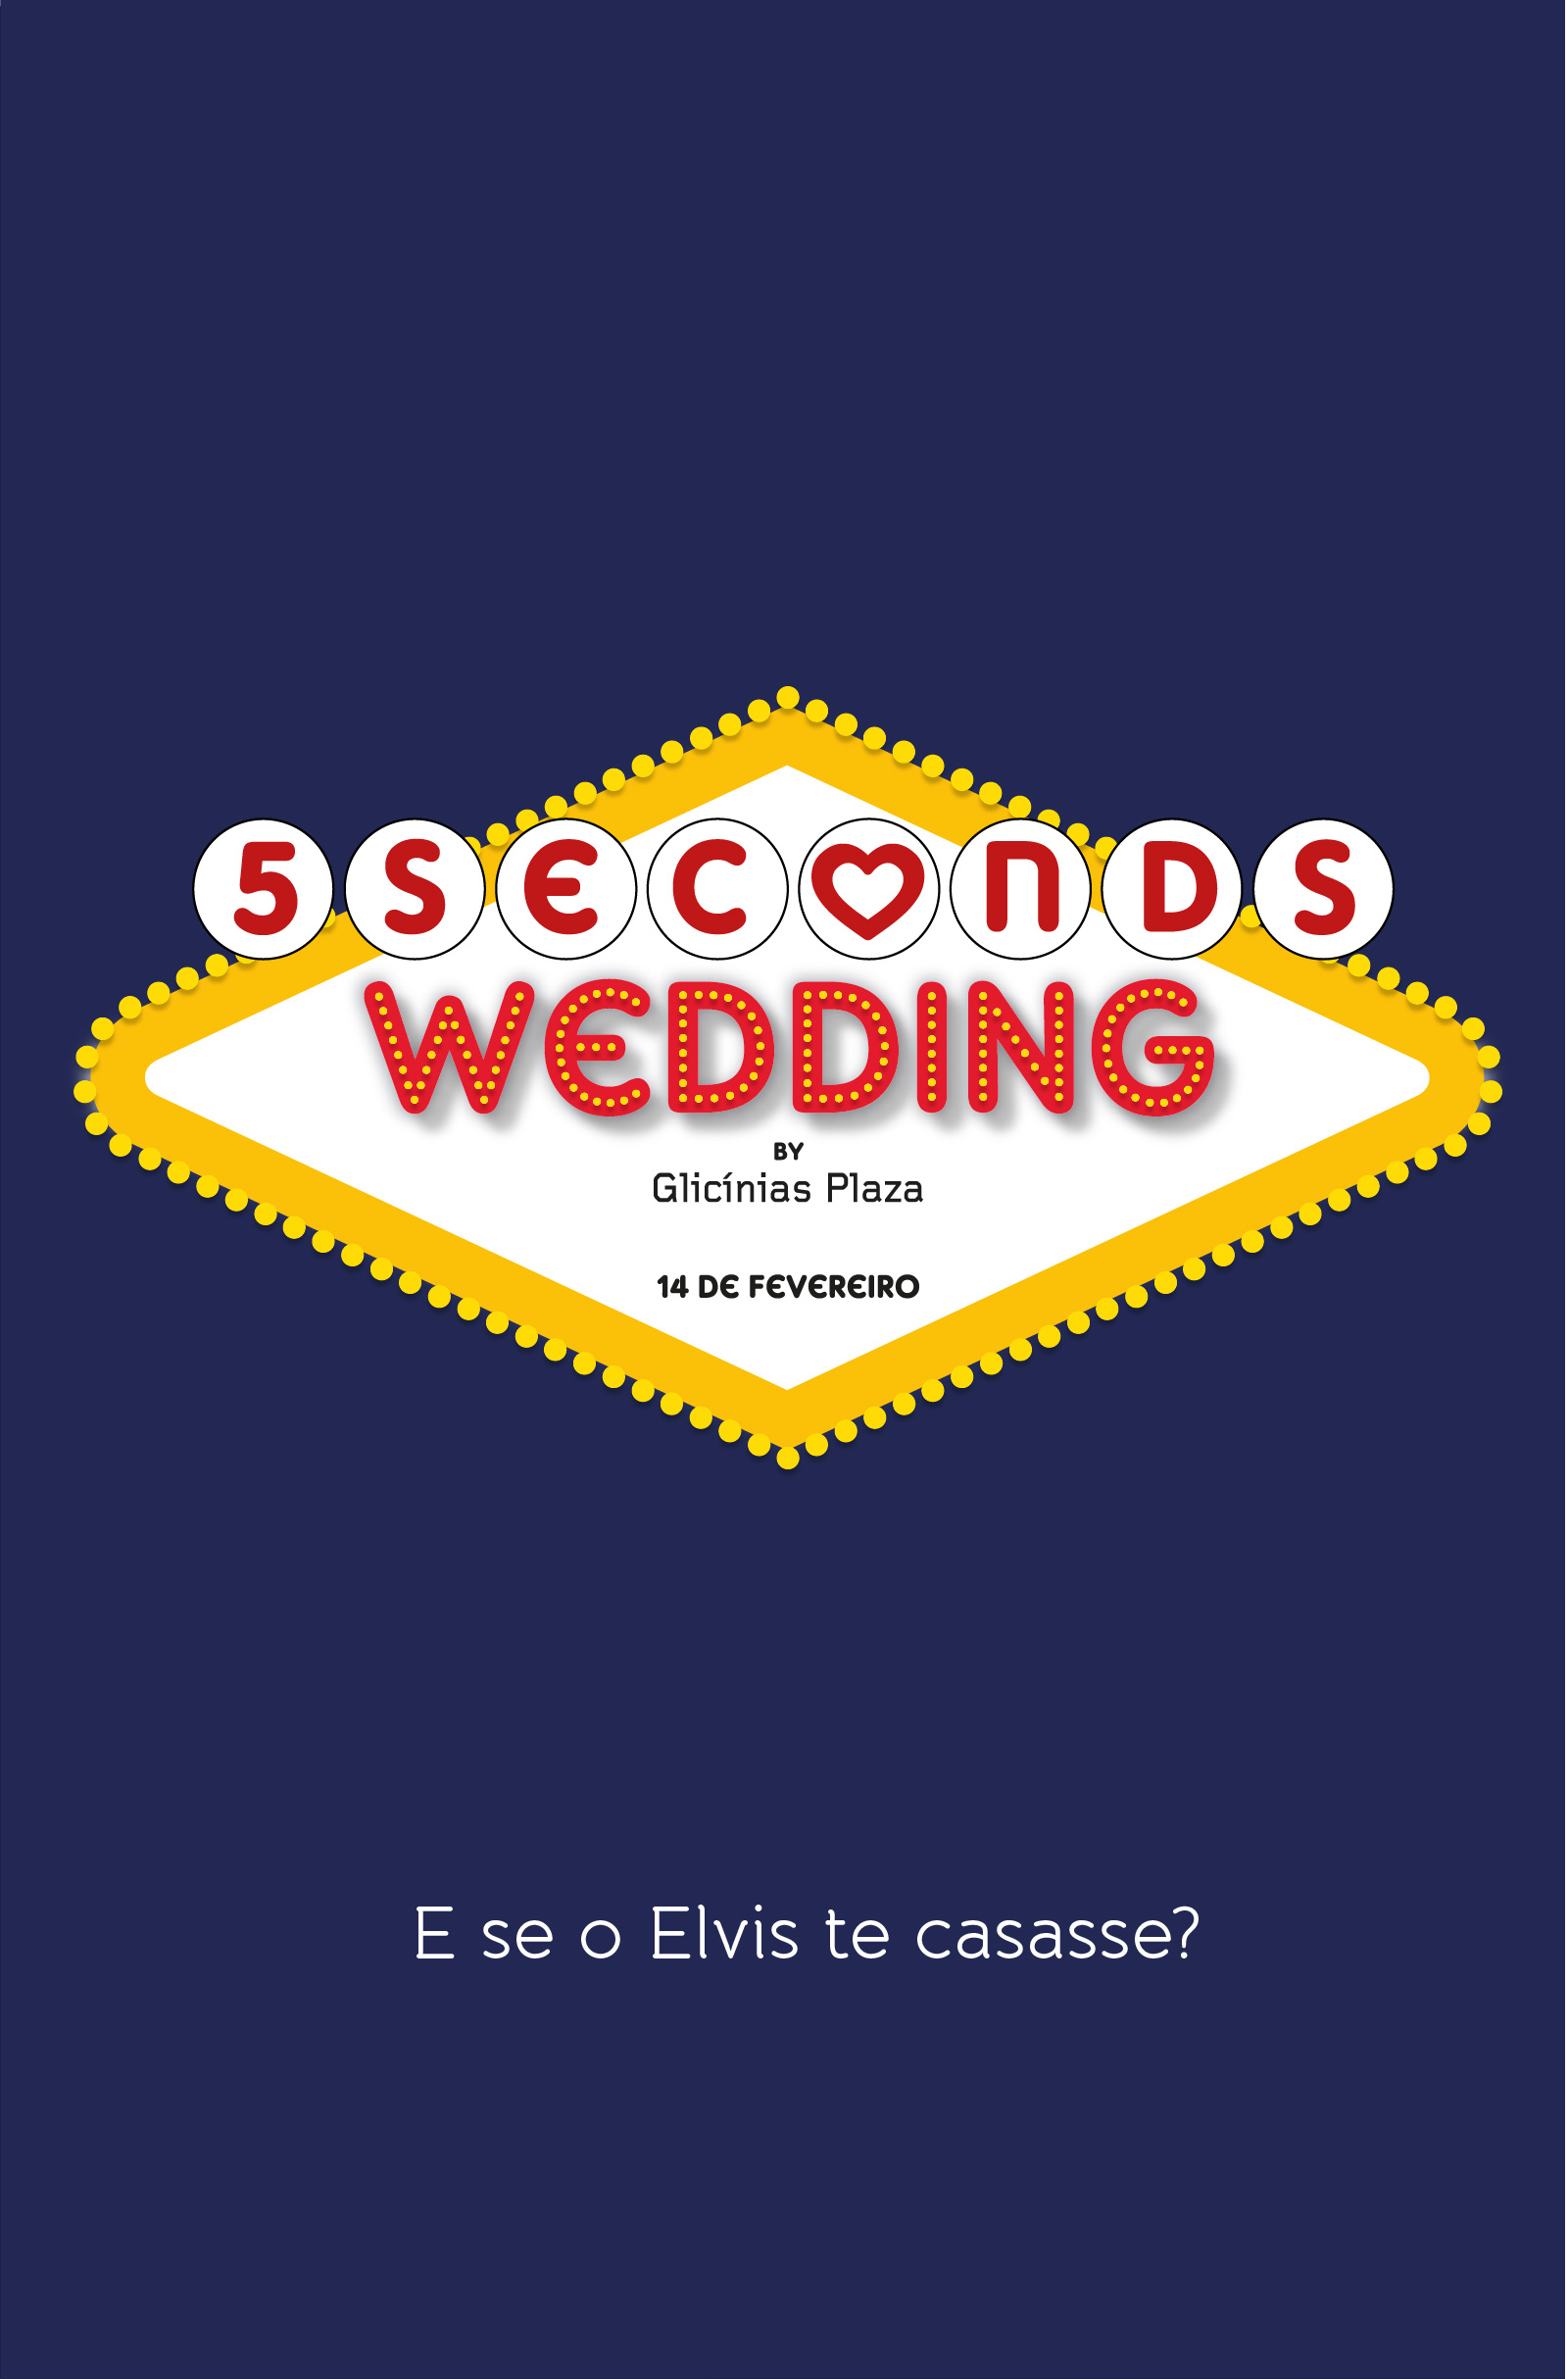 5 SECONDS WEDDING BY GLICÍNIAS PLAZA